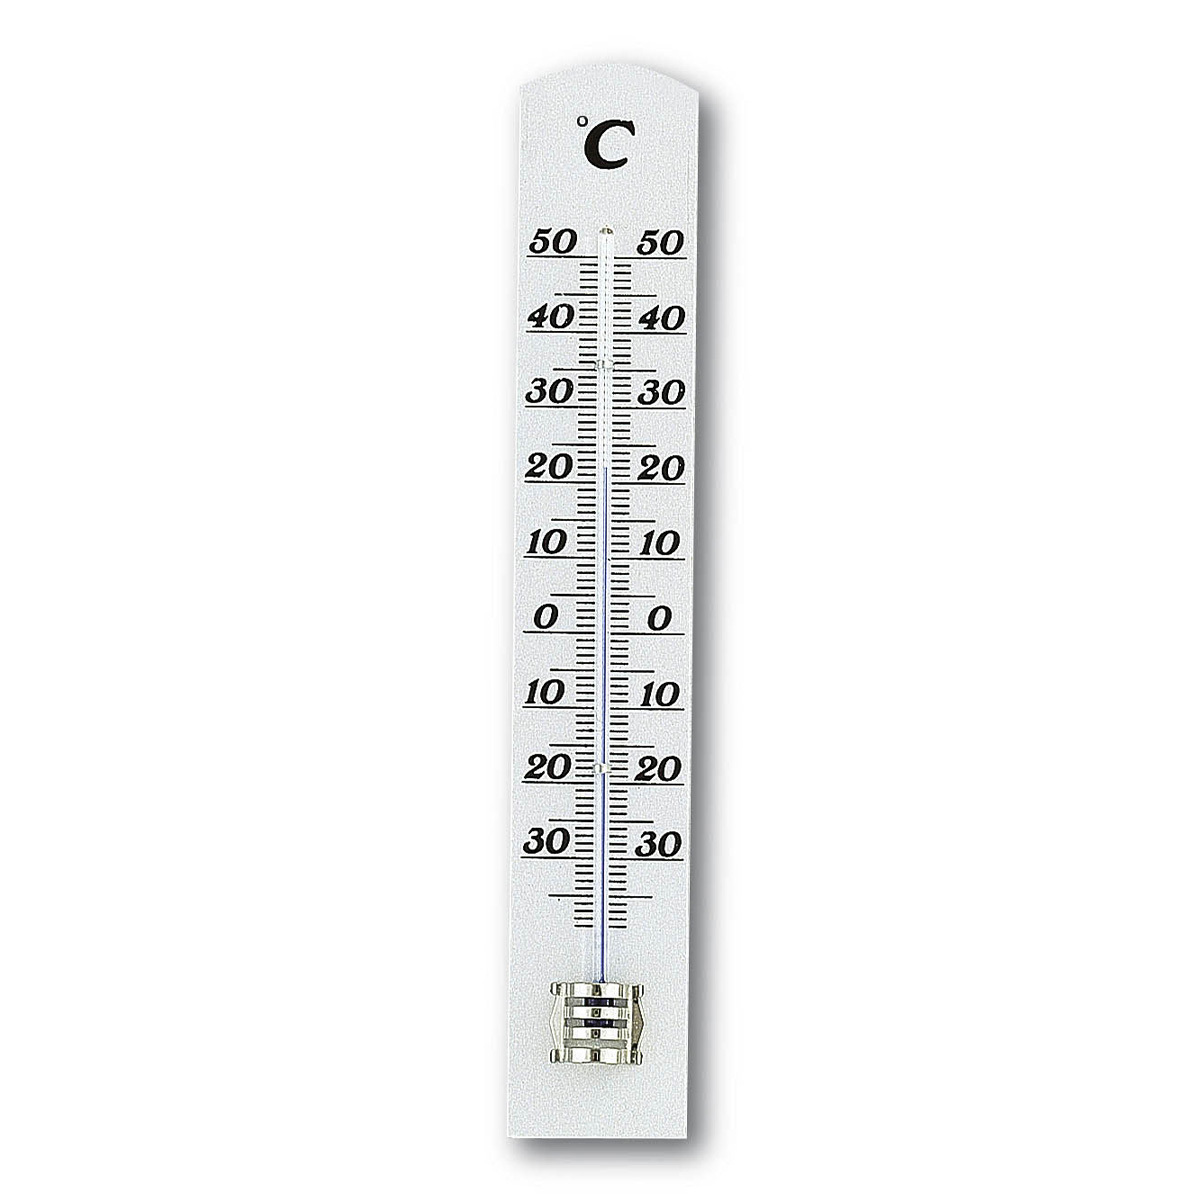 12-1003-09-analoges-innen-aussen-thermometer-buche-1200x1200px.jpg